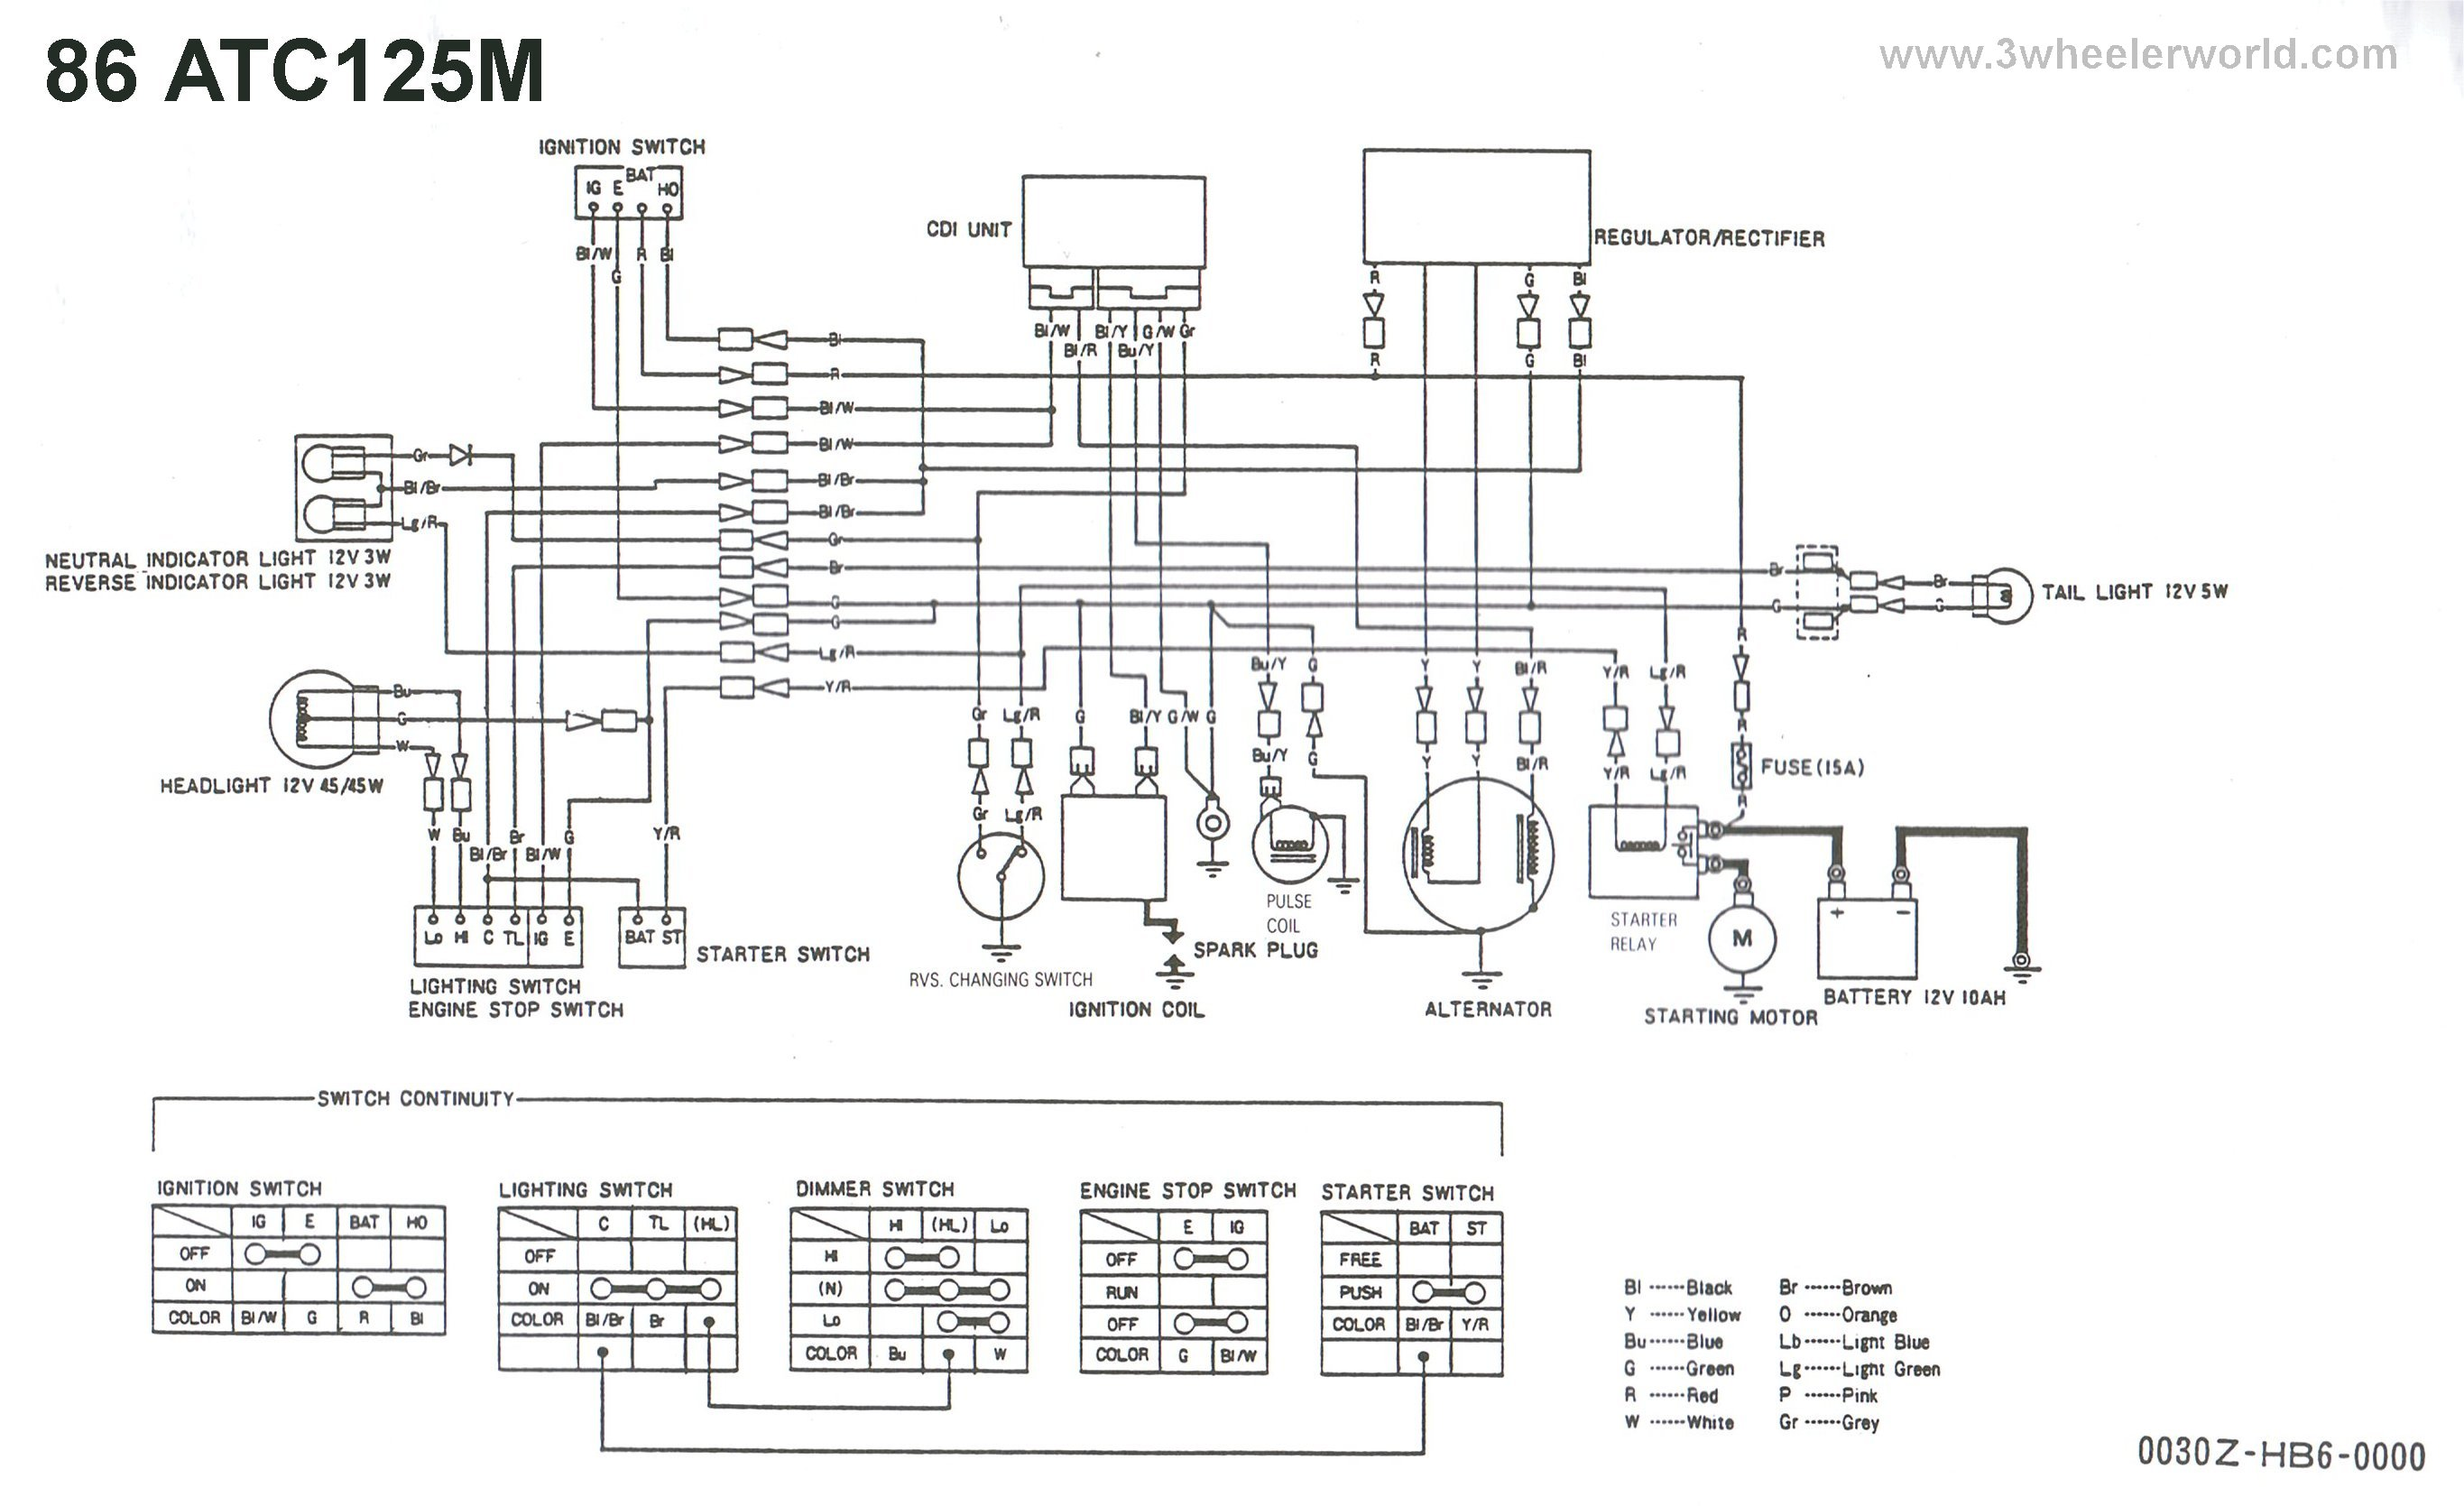 trx350 wiring diagram 1987  trx350  free engine image for